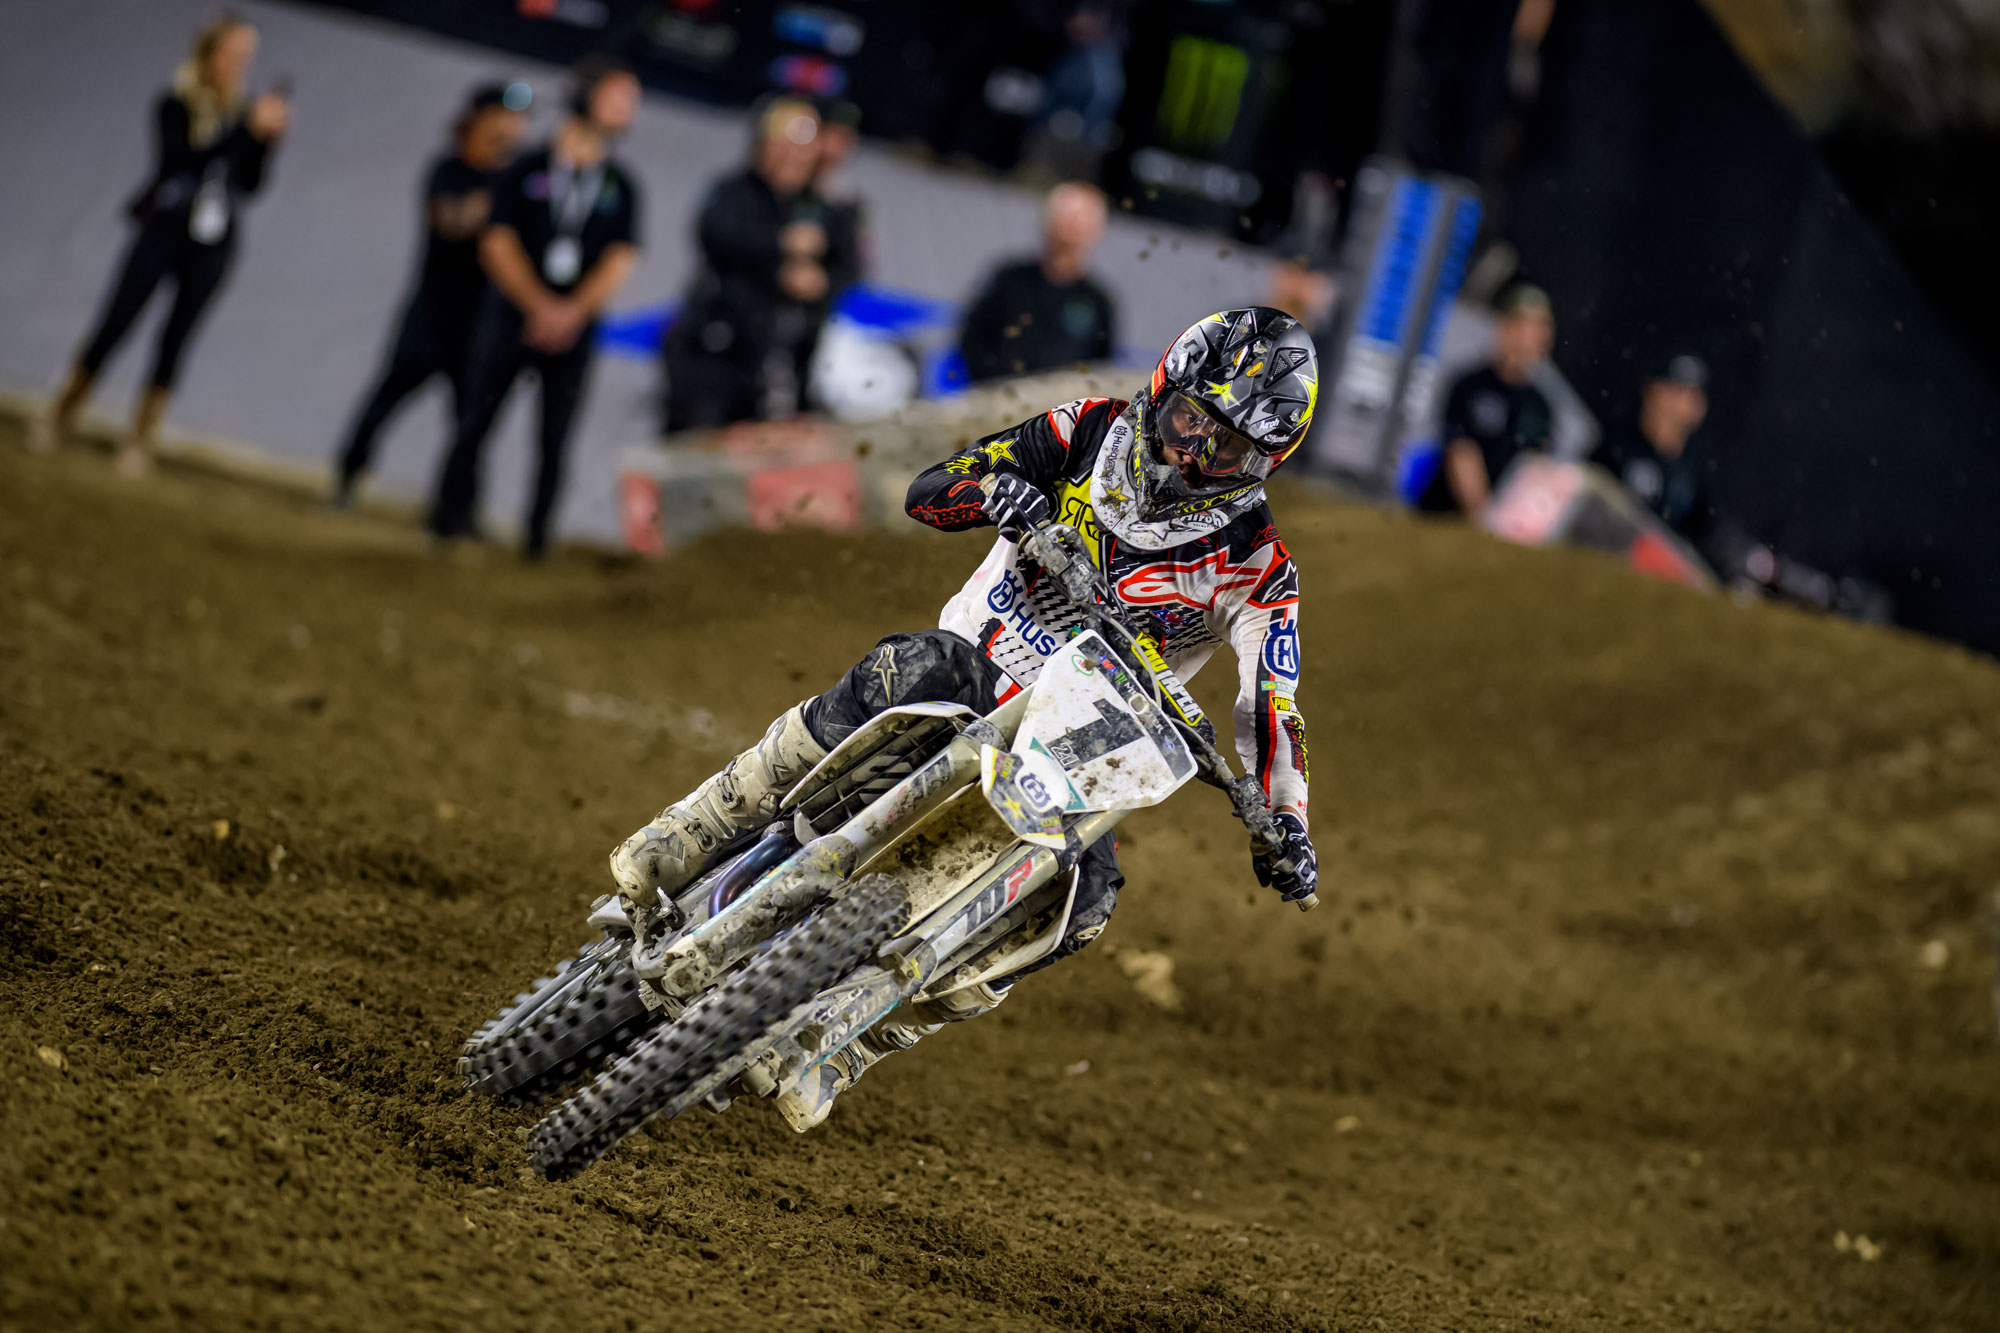 Rockstar Husqvarna's Jason Anderson went 6-6-17 in the first Triple Crown event of the year for 9th overall.